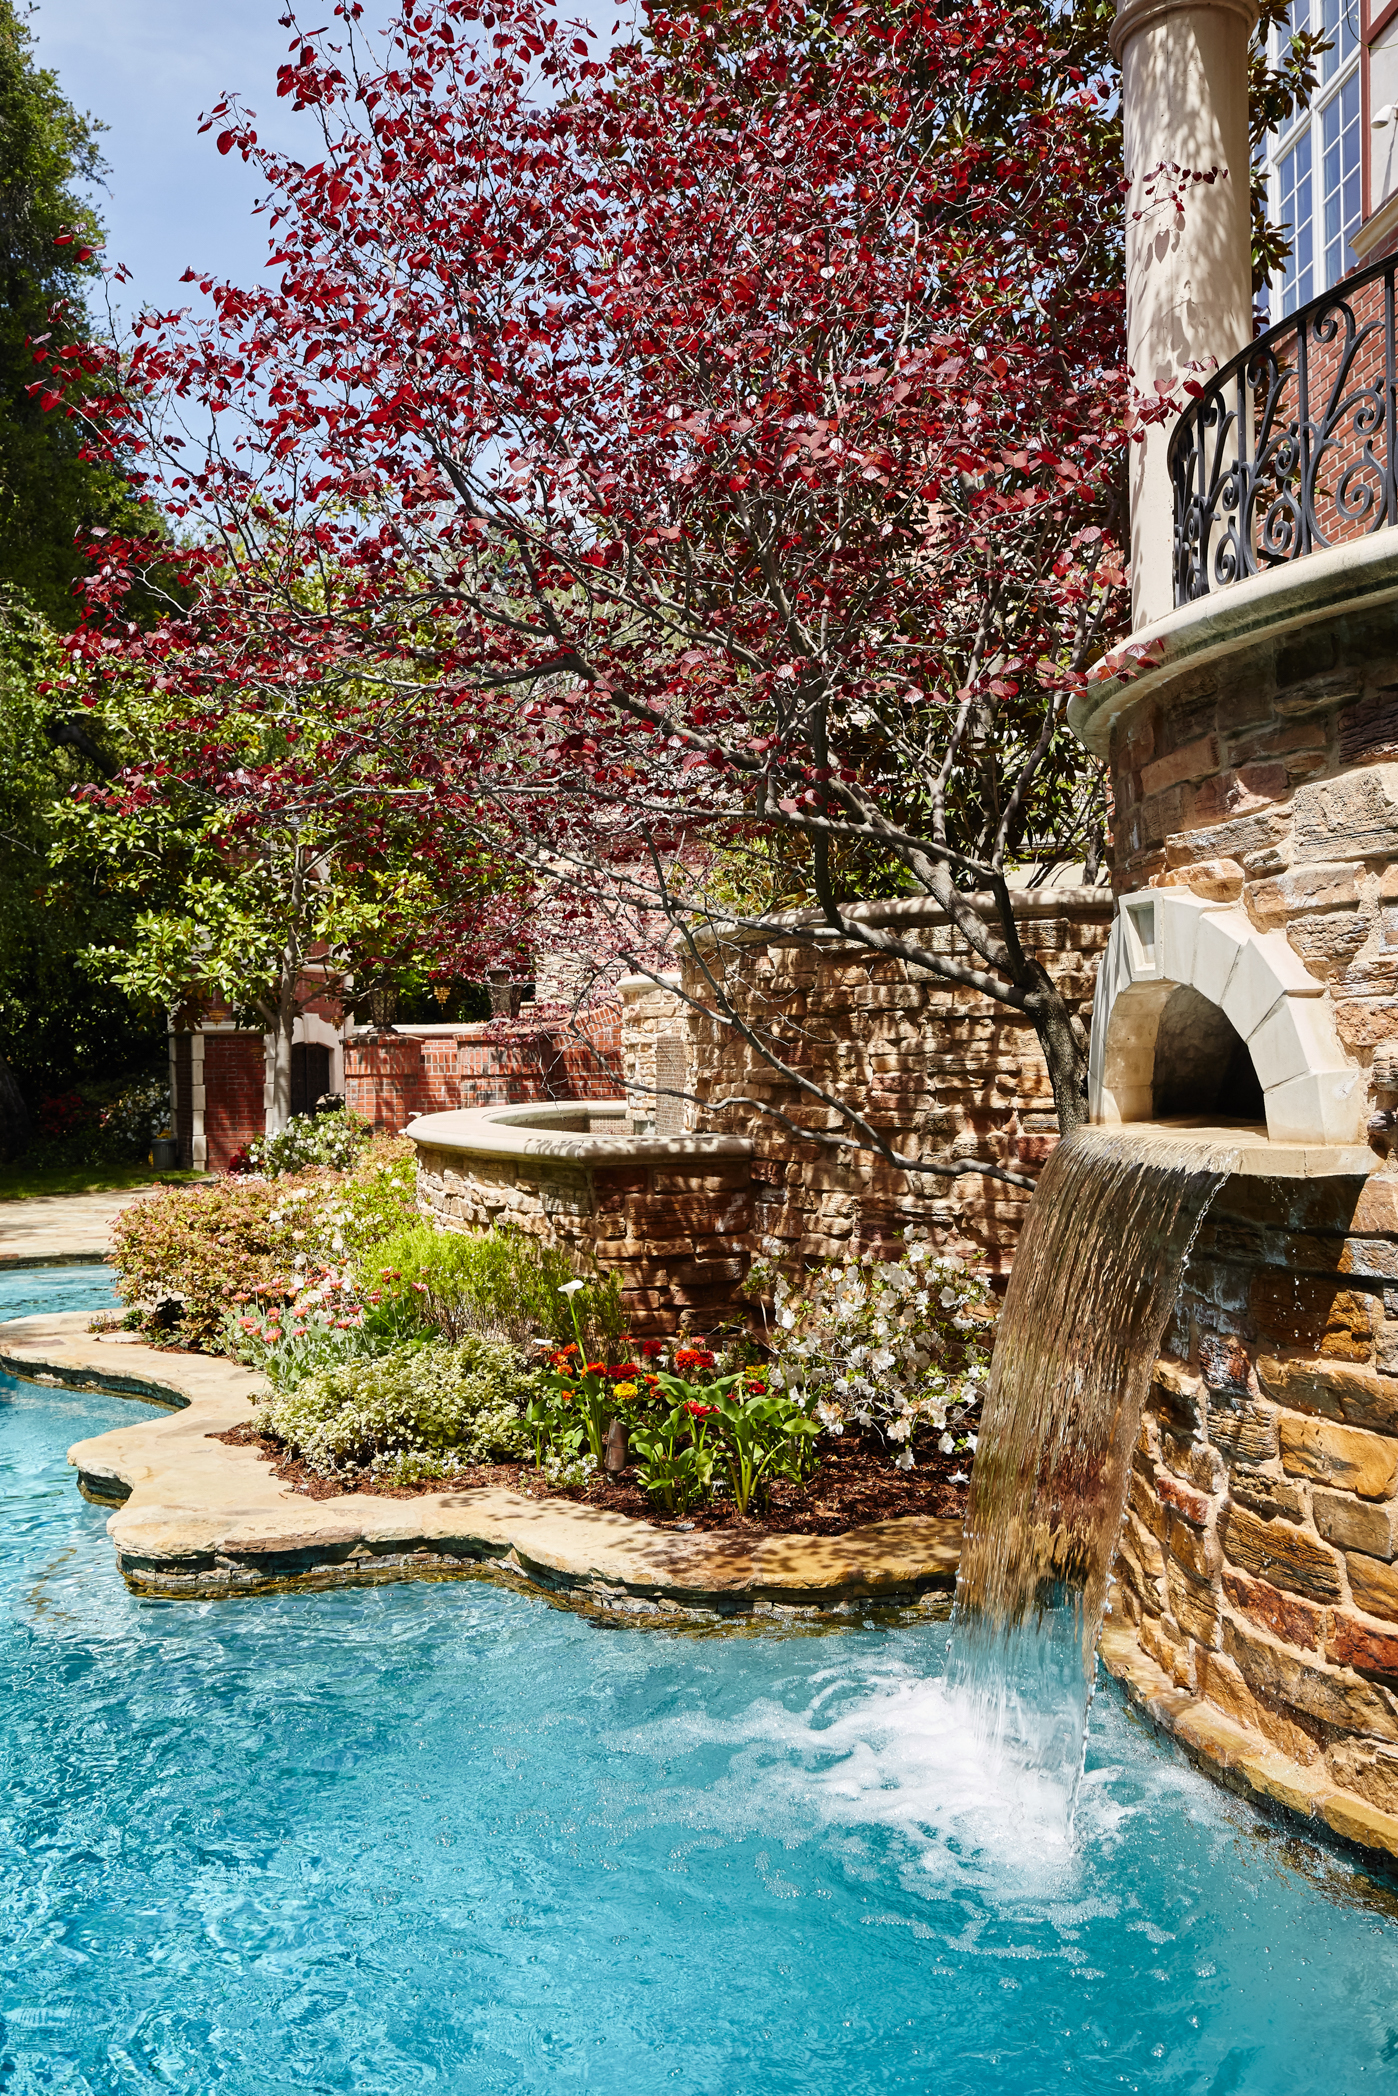 4033 Chevy Chase Exteriors_045.jpg